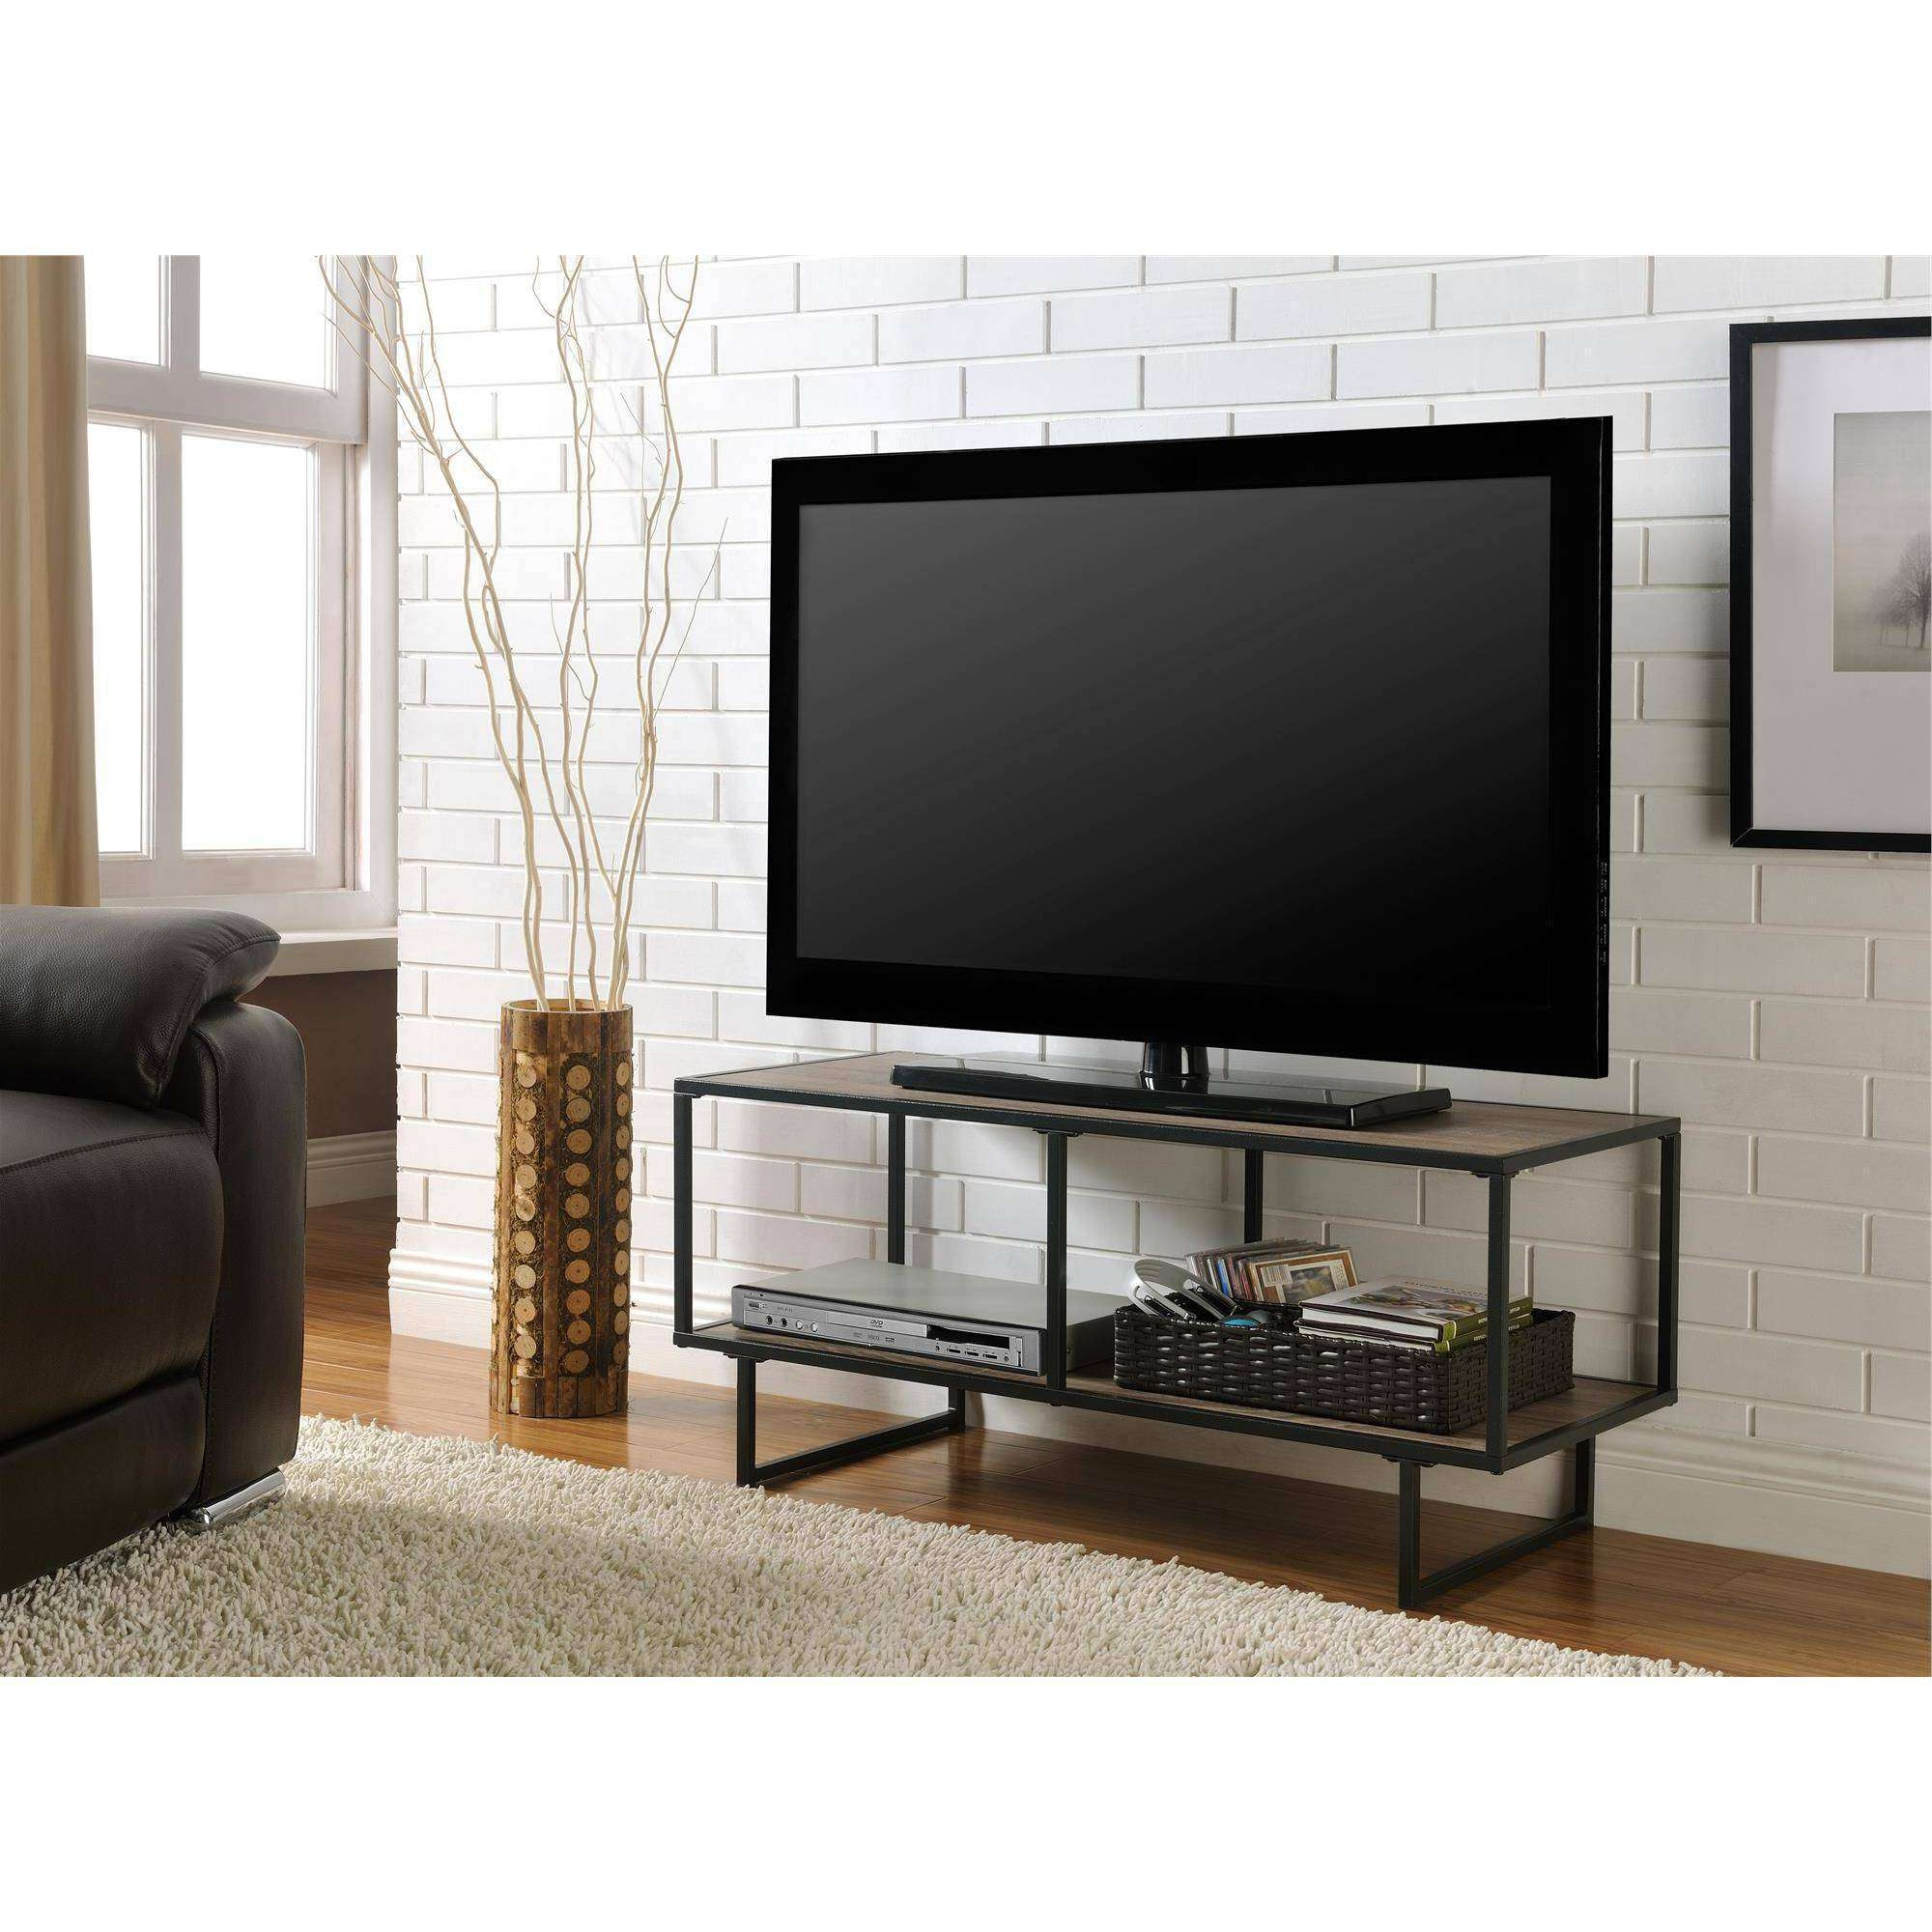 Coffee Table : Wonderful Coffee And Side Table Set Rolling Tv Within Tv Cabinets And Coffee Table Sets (View 12 of 20)